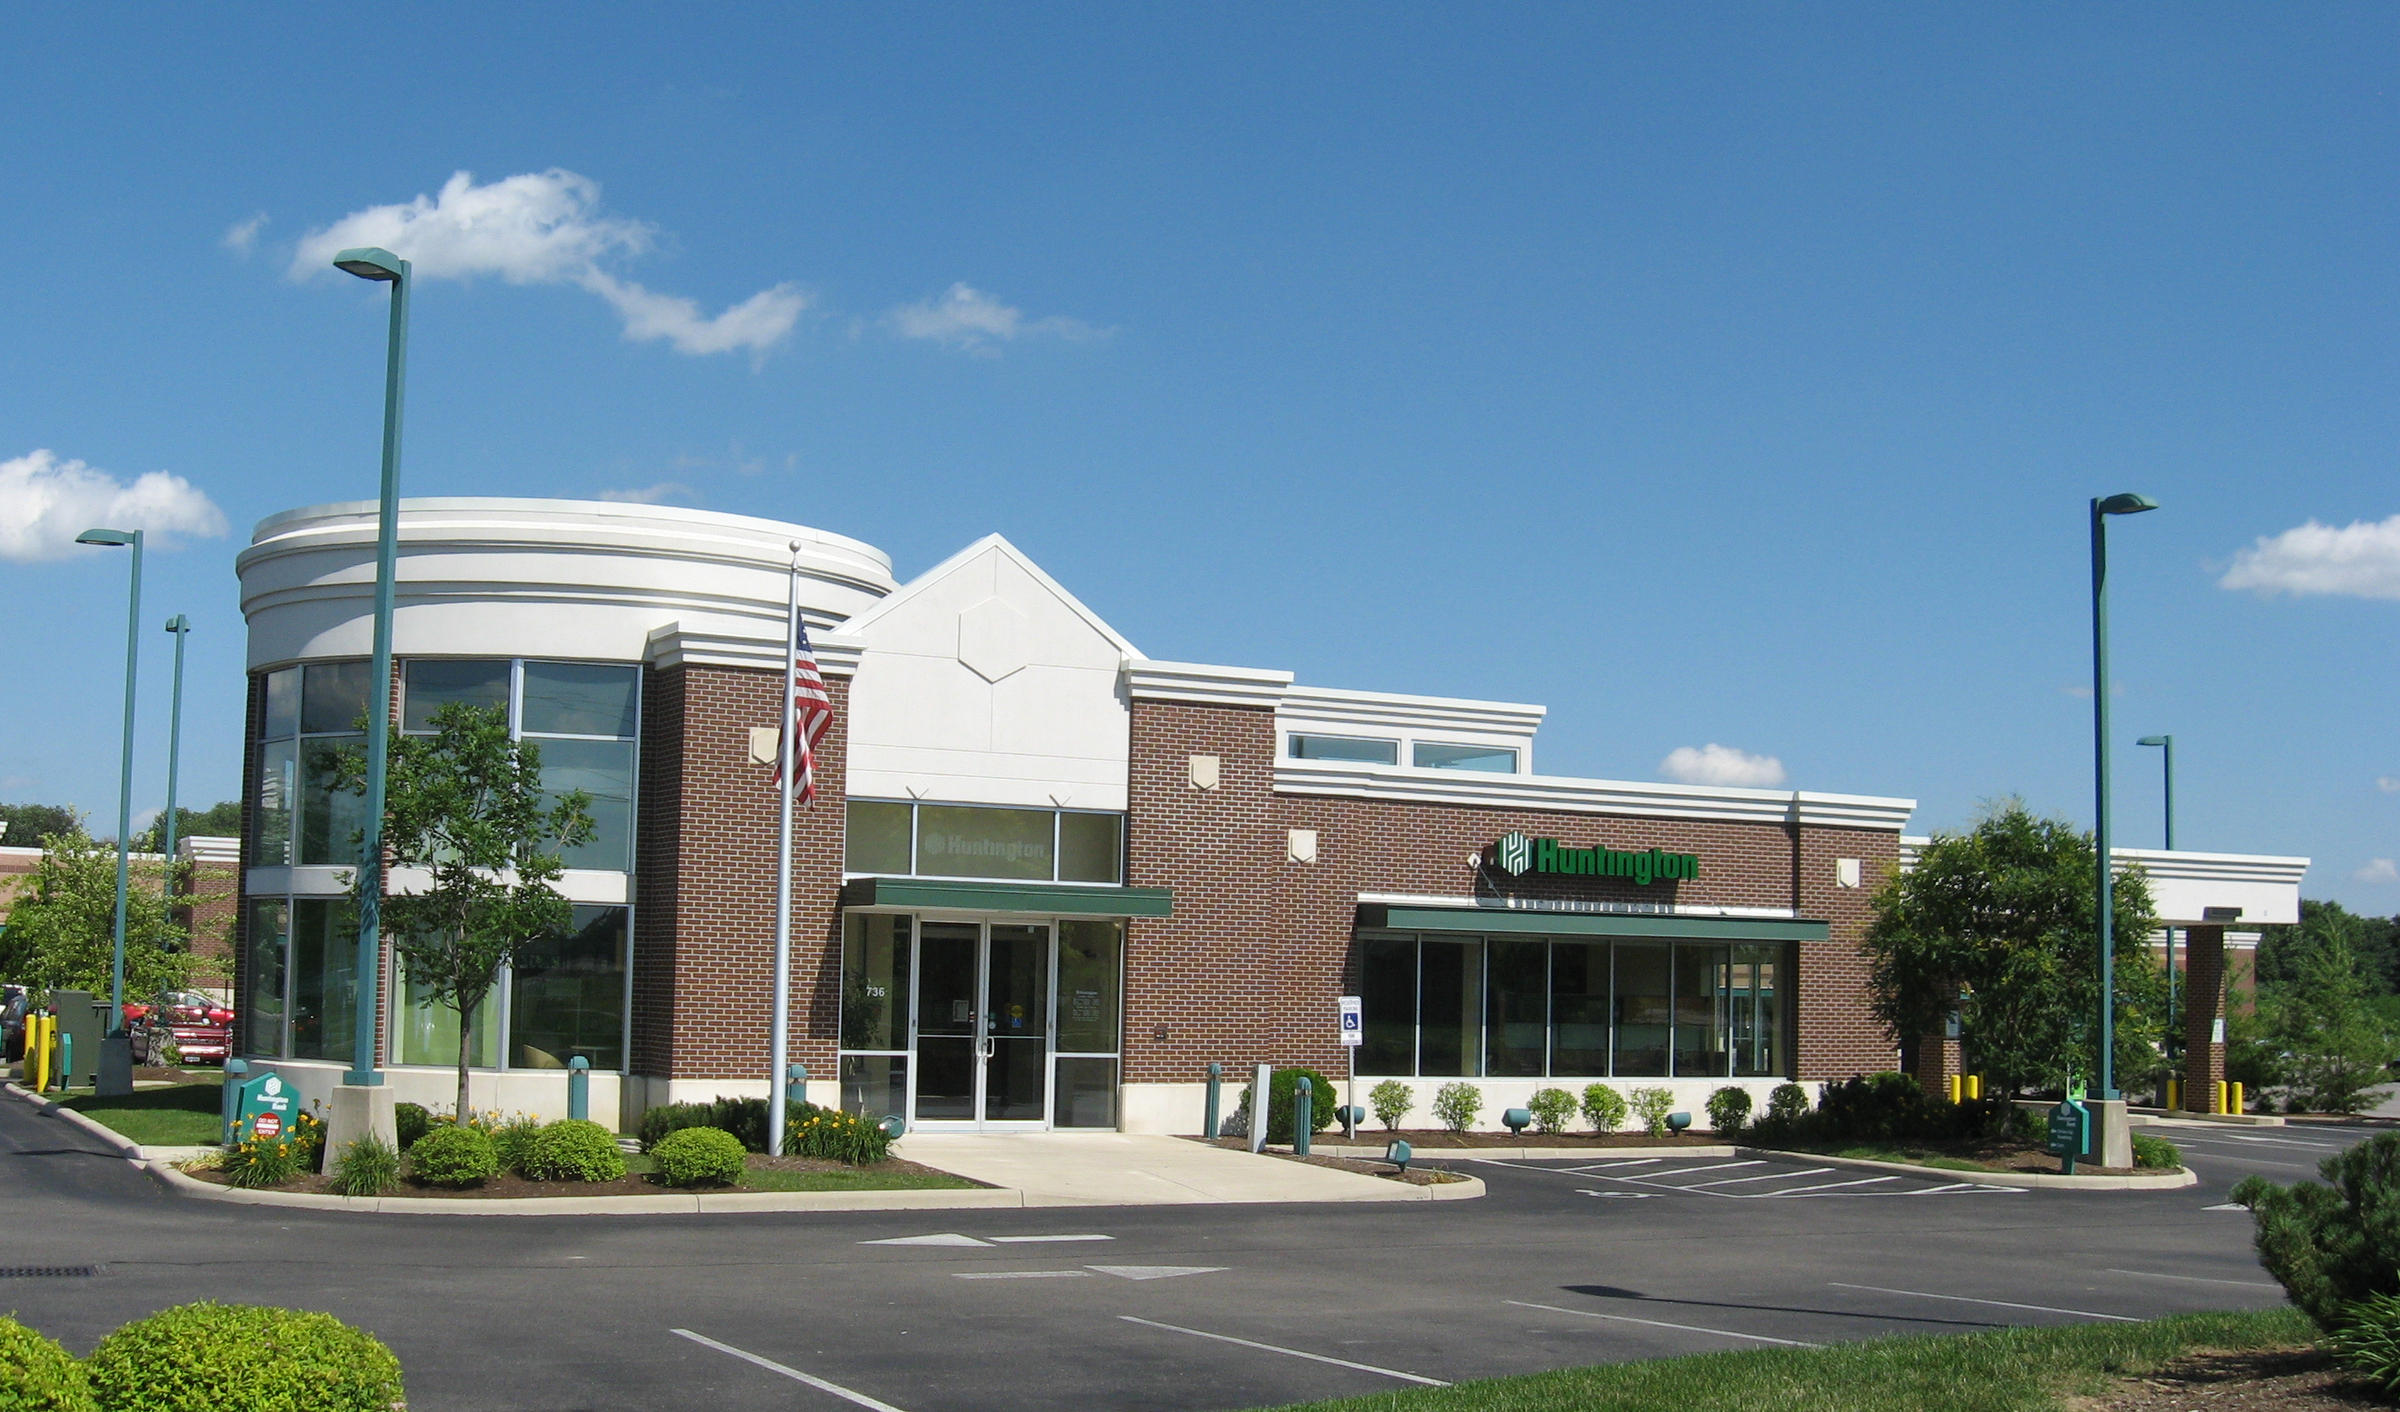 Search huntington bank online - Arab American Group Sues Bank For Closing Accounts Based On Race Religion